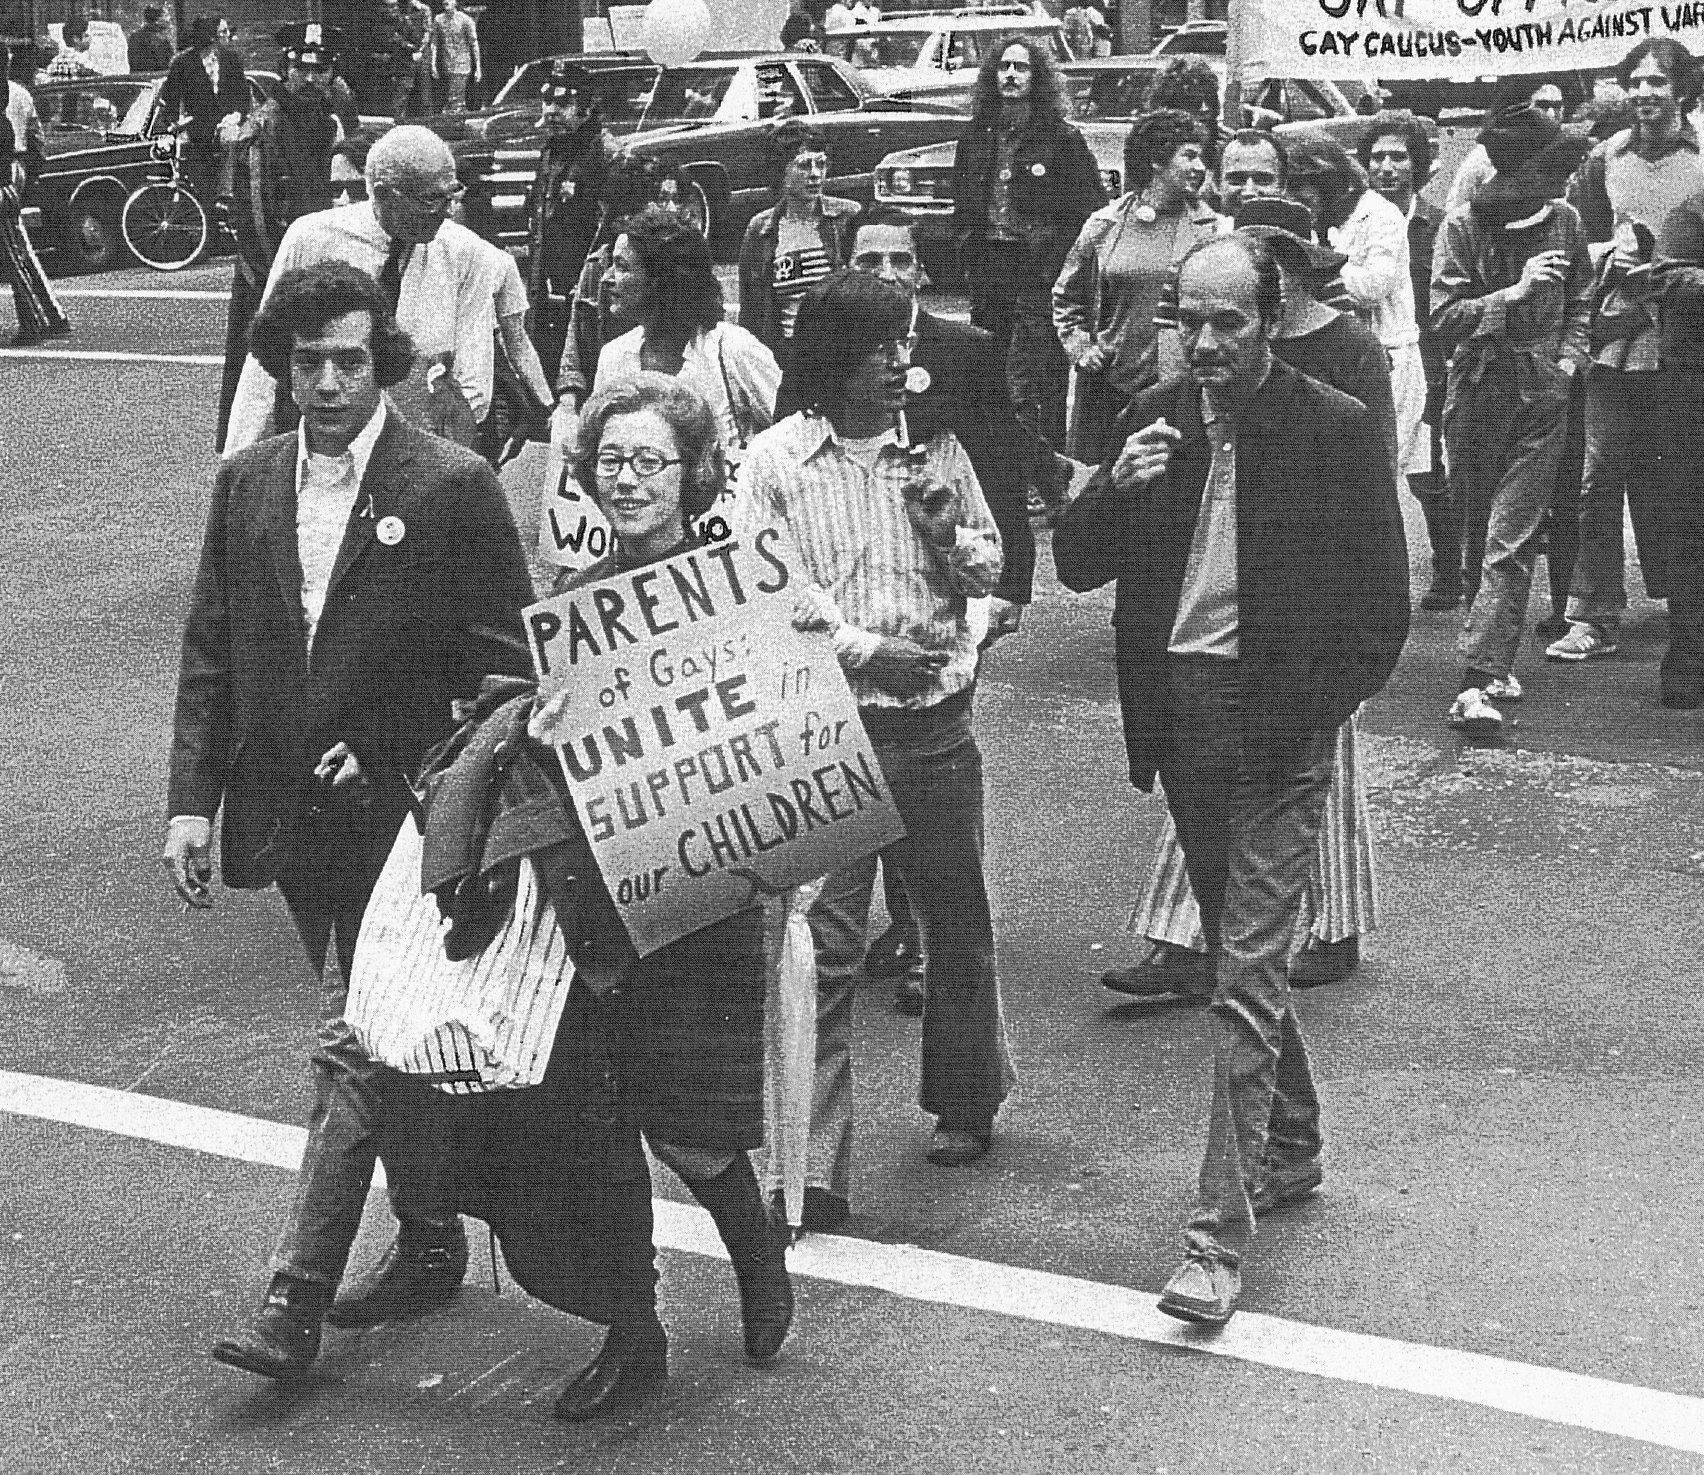 The moment that started it all: Jeanne Manford marches with son activist Morty Manford at the 1972 Christopher Street Liberation Day March